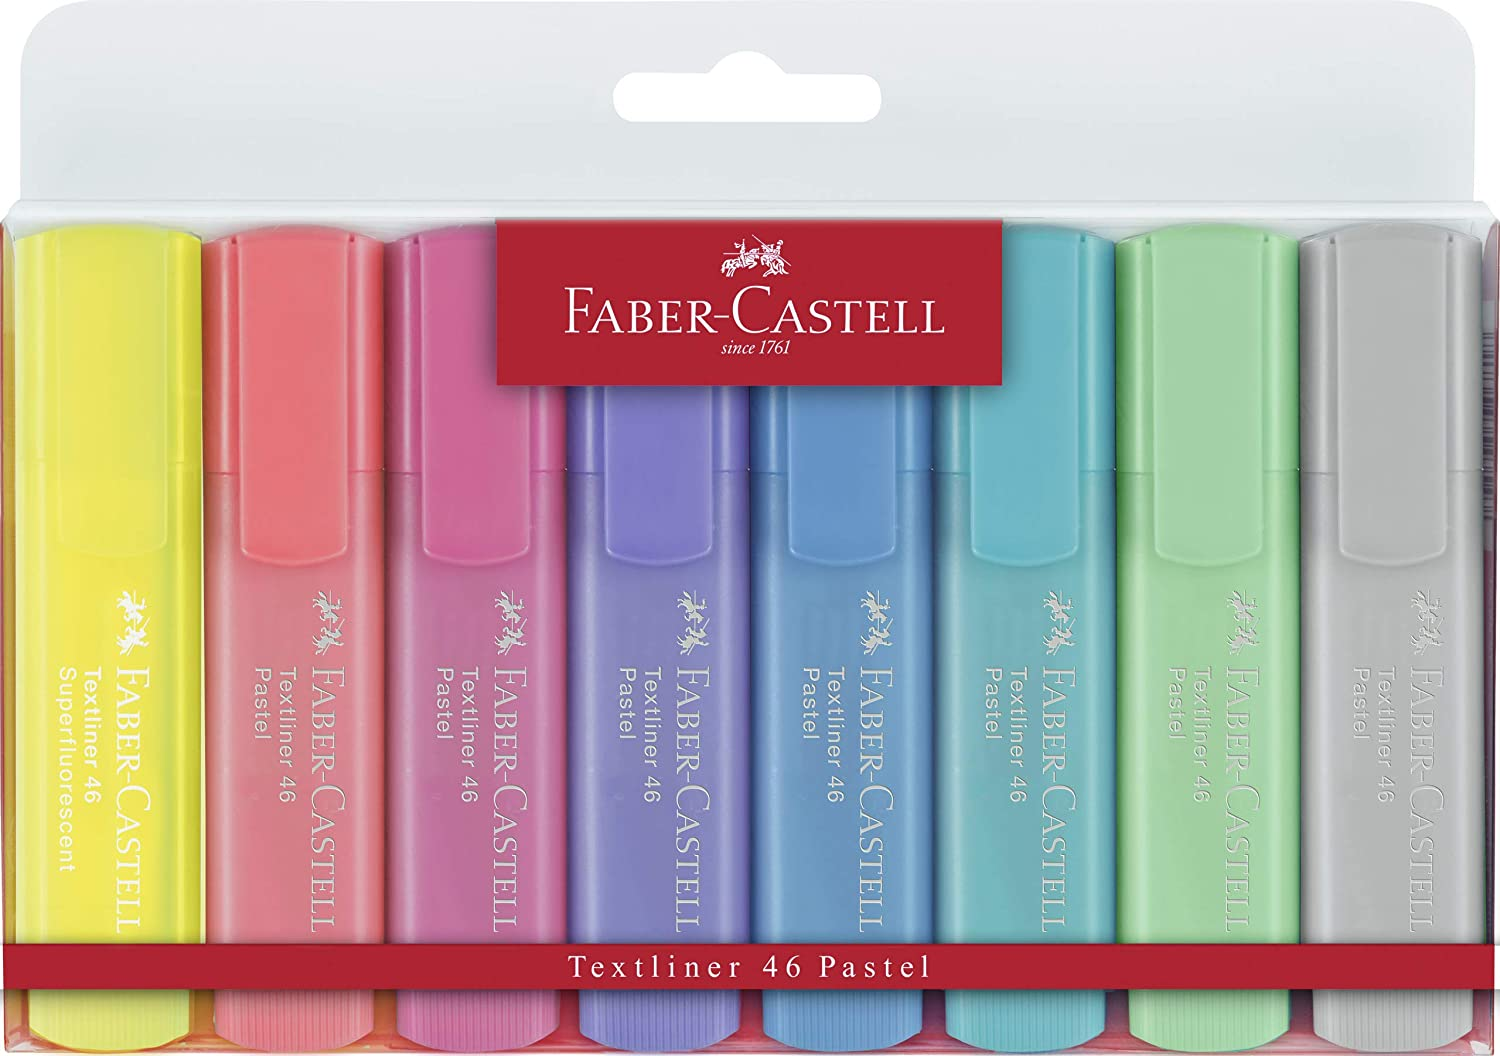 Faber-Castell 154681 Textliner Pastel Highlighter Virginia Beach Online limited product Mall Pen of Pack 8